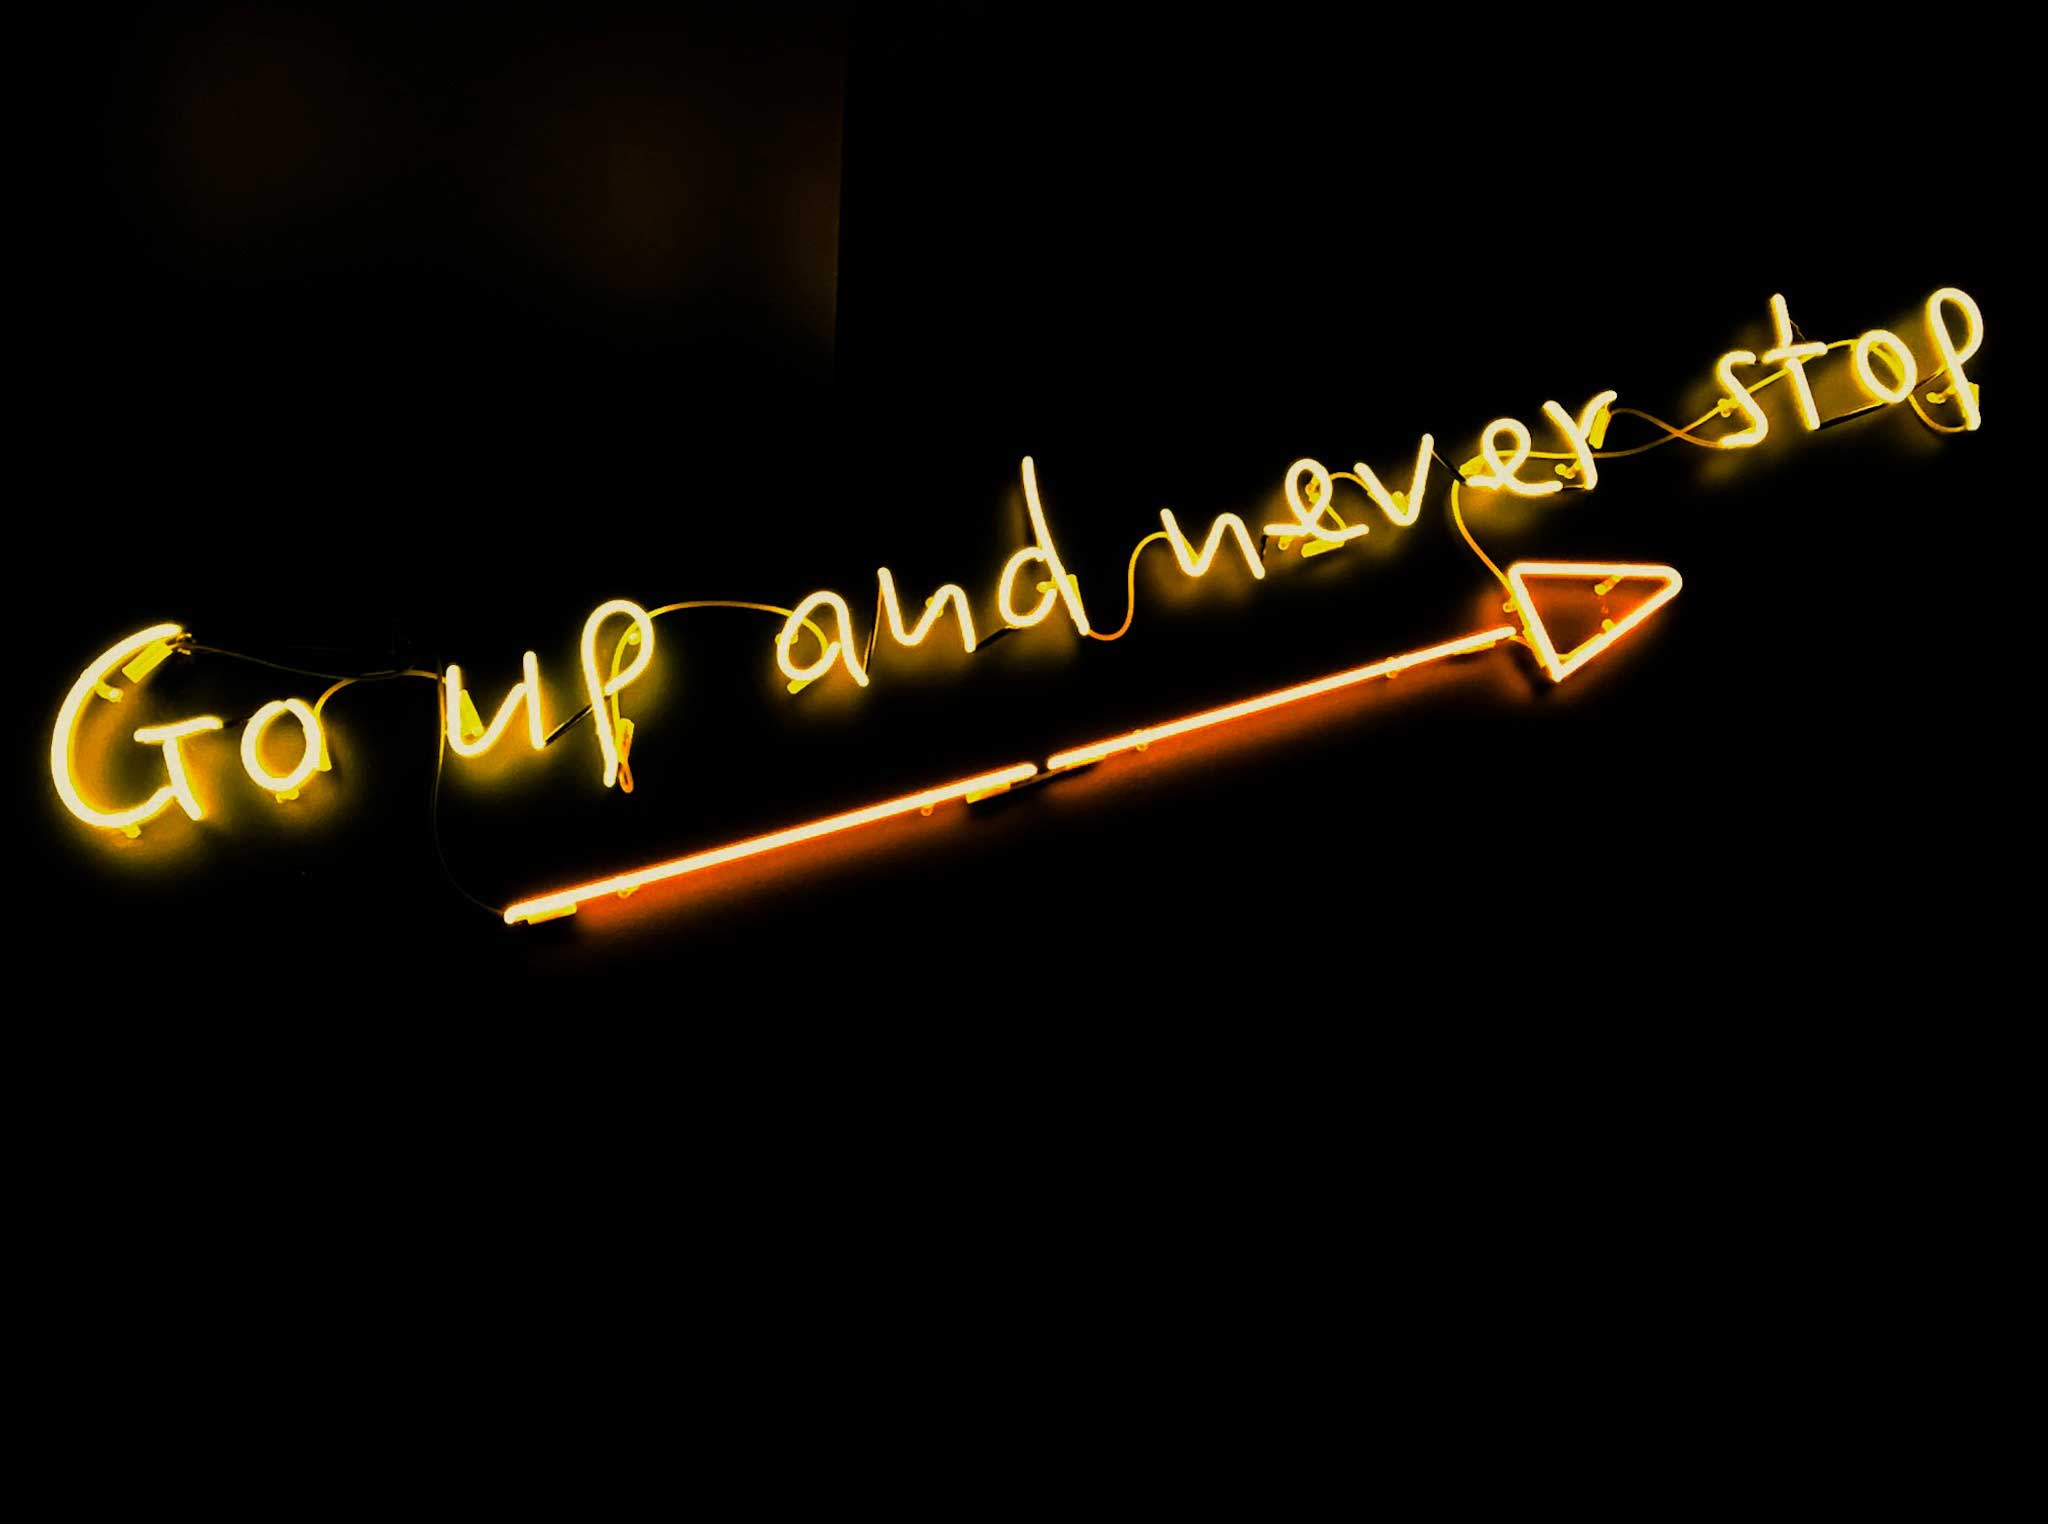 Never-give-up-on-what-matters-to-you